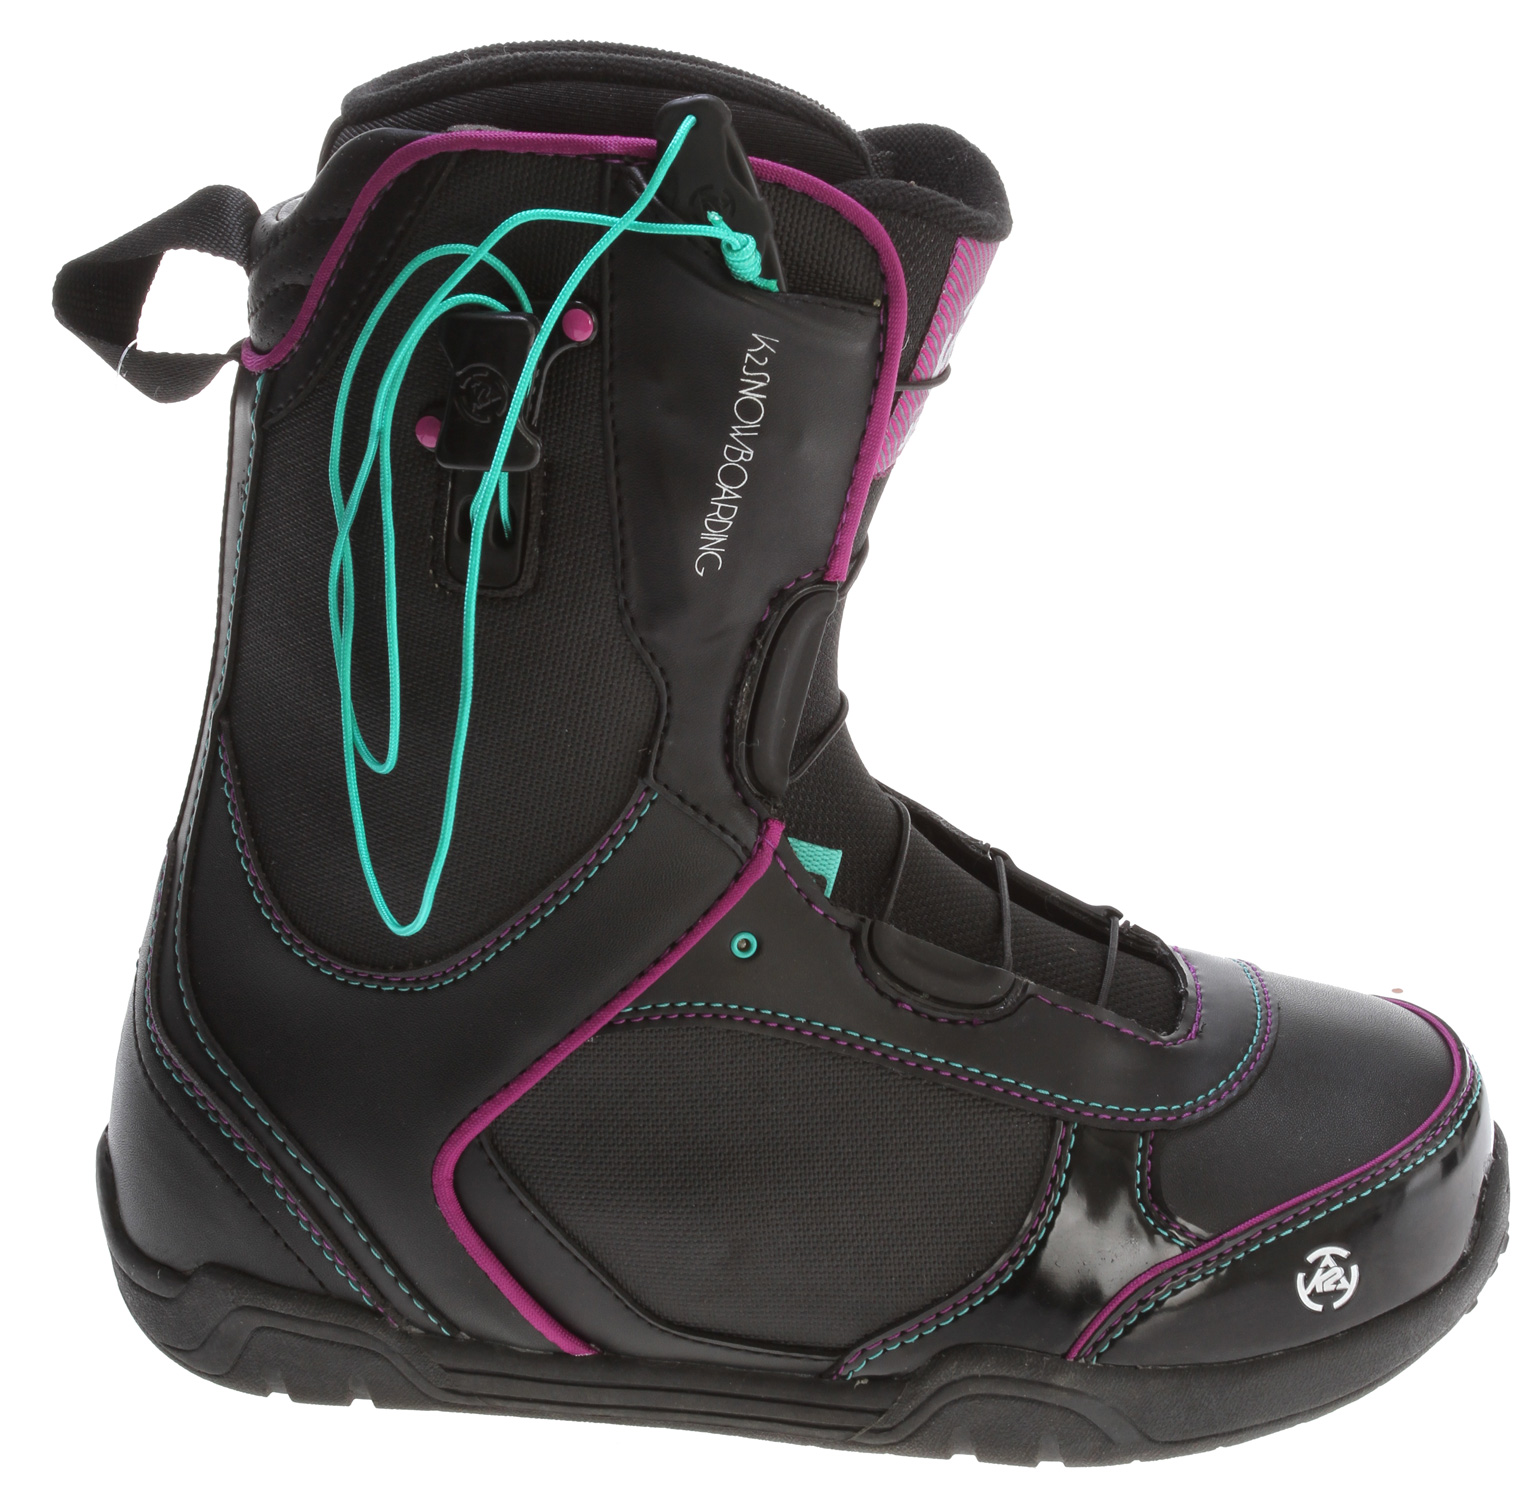 Snowboard Made for the advancing women's rider looking for lightweight and easy to tighten performance. The Scene is not just street focused style without substance. Intuition custom fit and Conda ankle hold adjustment on the fly show up all those that try and step.Key Features of the K2 Scene Snowboard Boots: FLEX: 4 LACING SYSTEM: K2 Speedlace LINER LACING: Conda™ LINER: Intuition™ Comfort fit 3D OUTSOLE: Low-Pro Outsole FOOTBED: EVA Insole LINER FIT: Custom Moldable External J Bars DETAILS: 3D Formed Tongue - $111.95